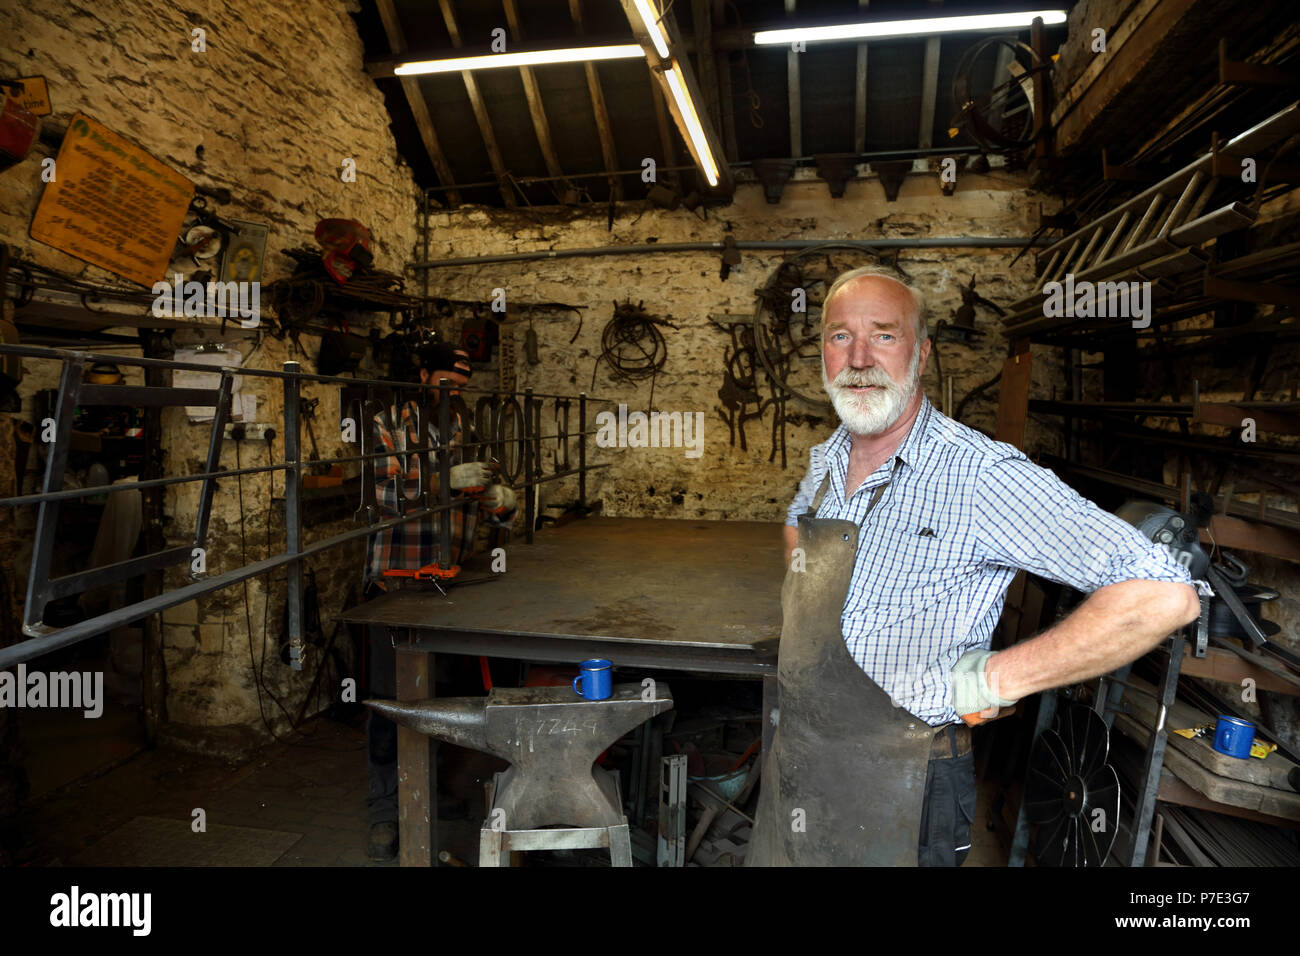 Blacksmith with hands on hips in blacksmiths shop, portrait Stock Photo